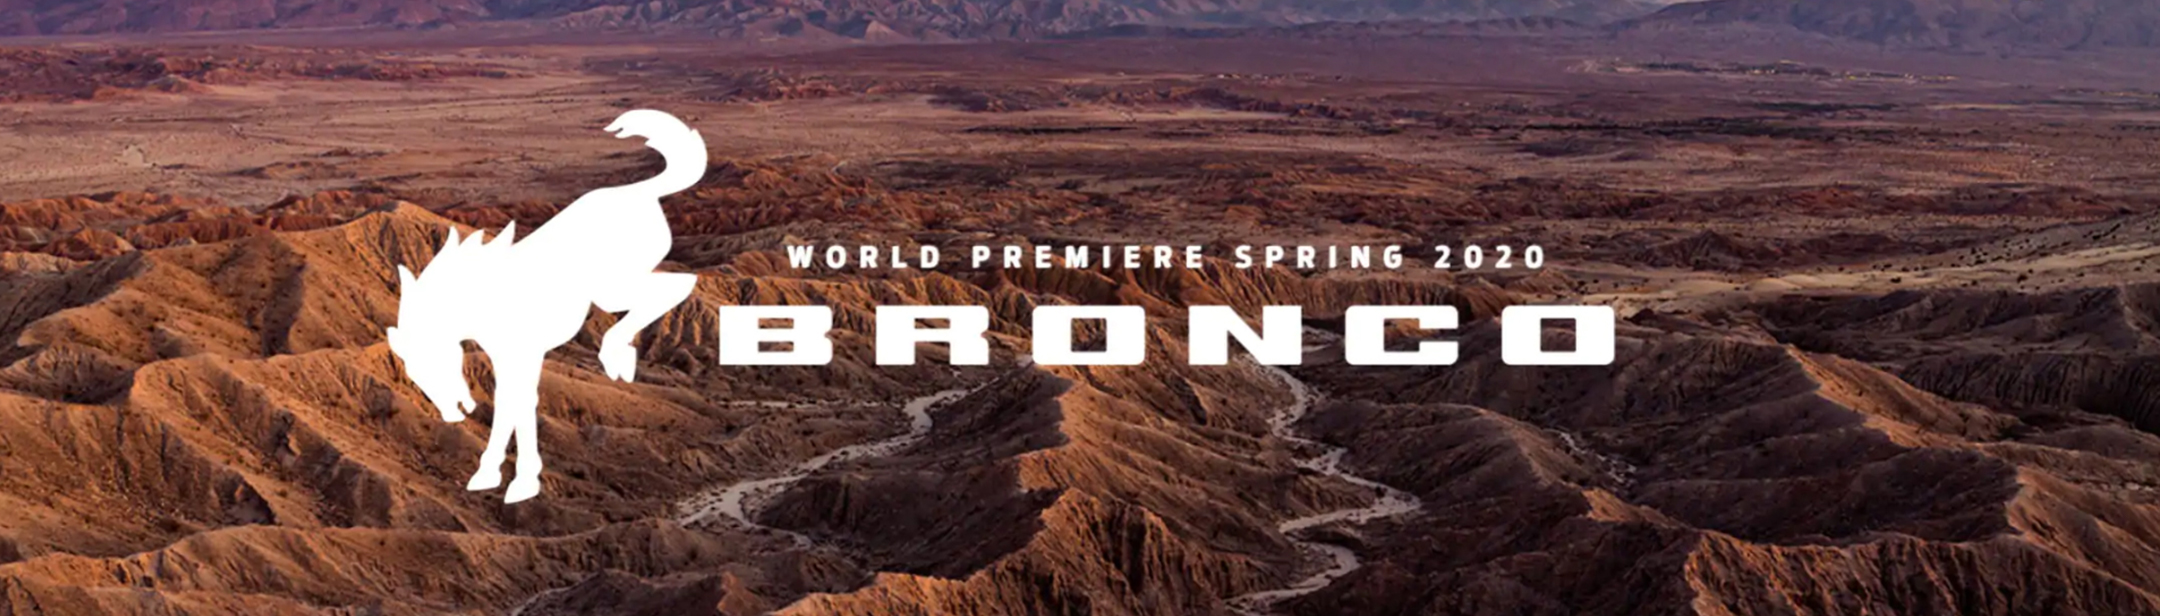 world premiere spring 2020 for the ford bronco